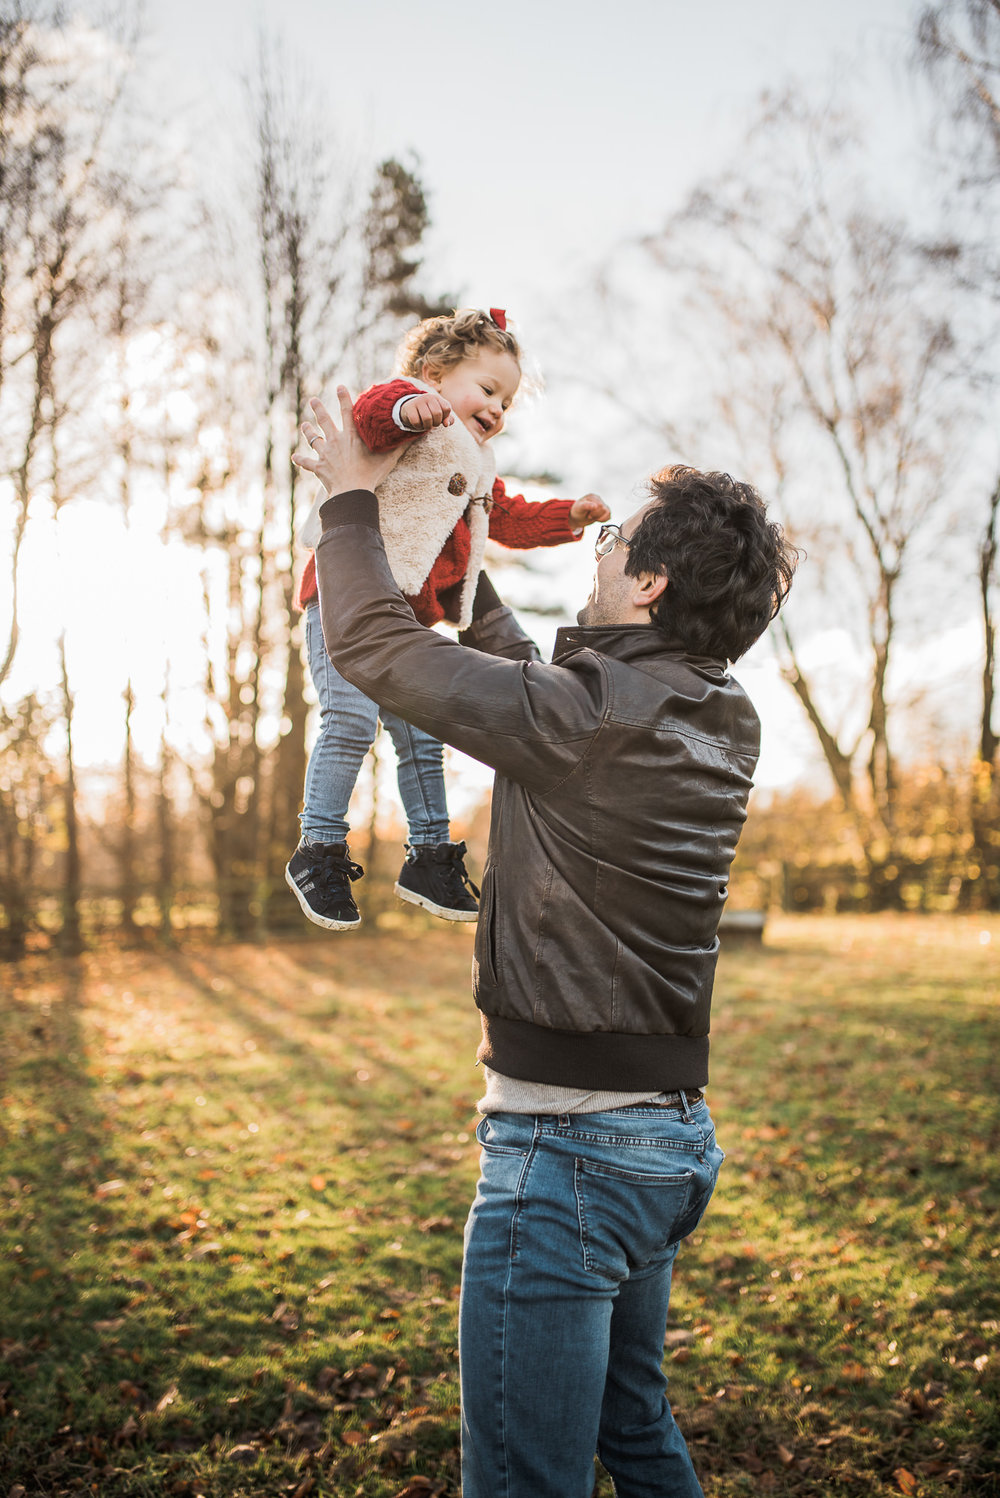 dad with child throwing in air.jpg